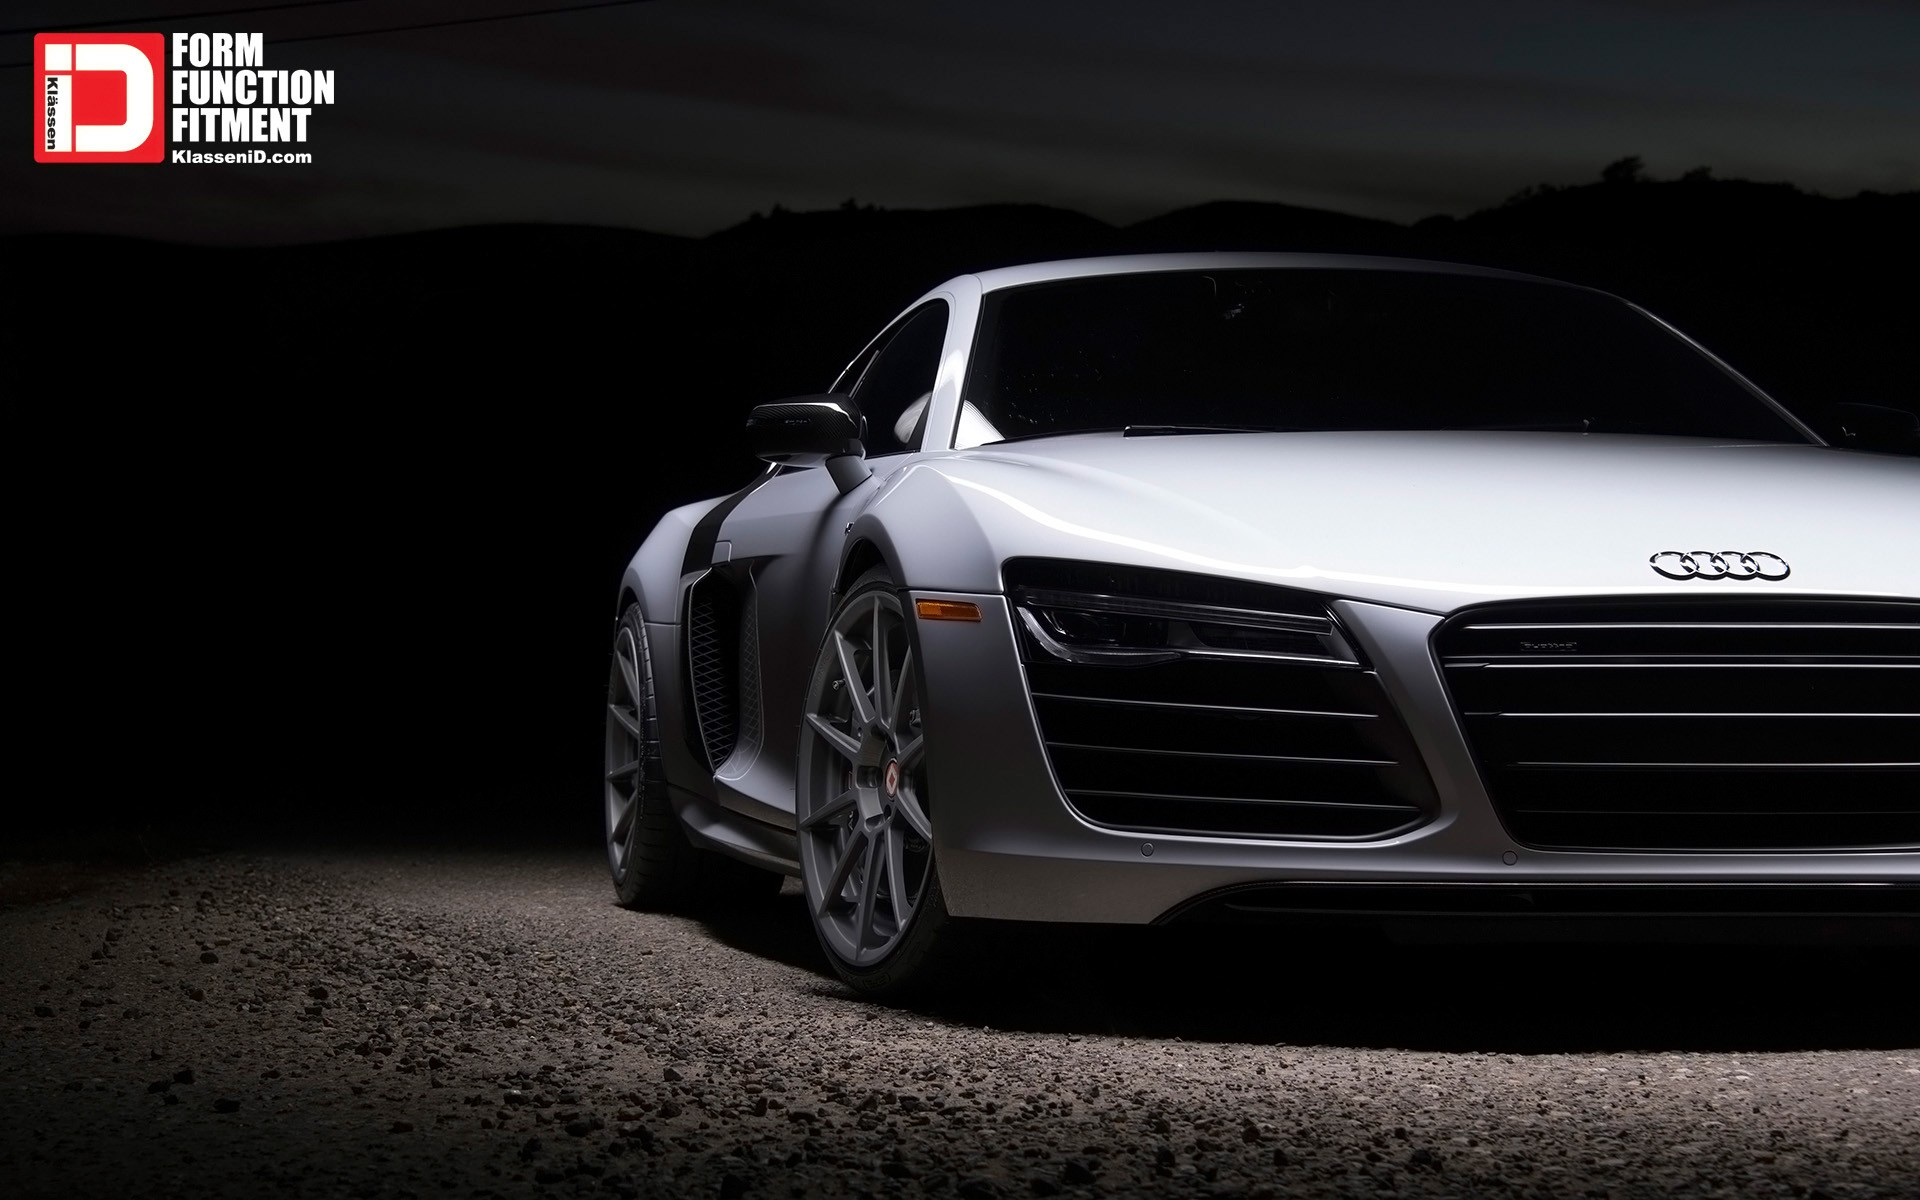 2015 Klassen Audi R8 Wallpaper | HD Car Wallpapers